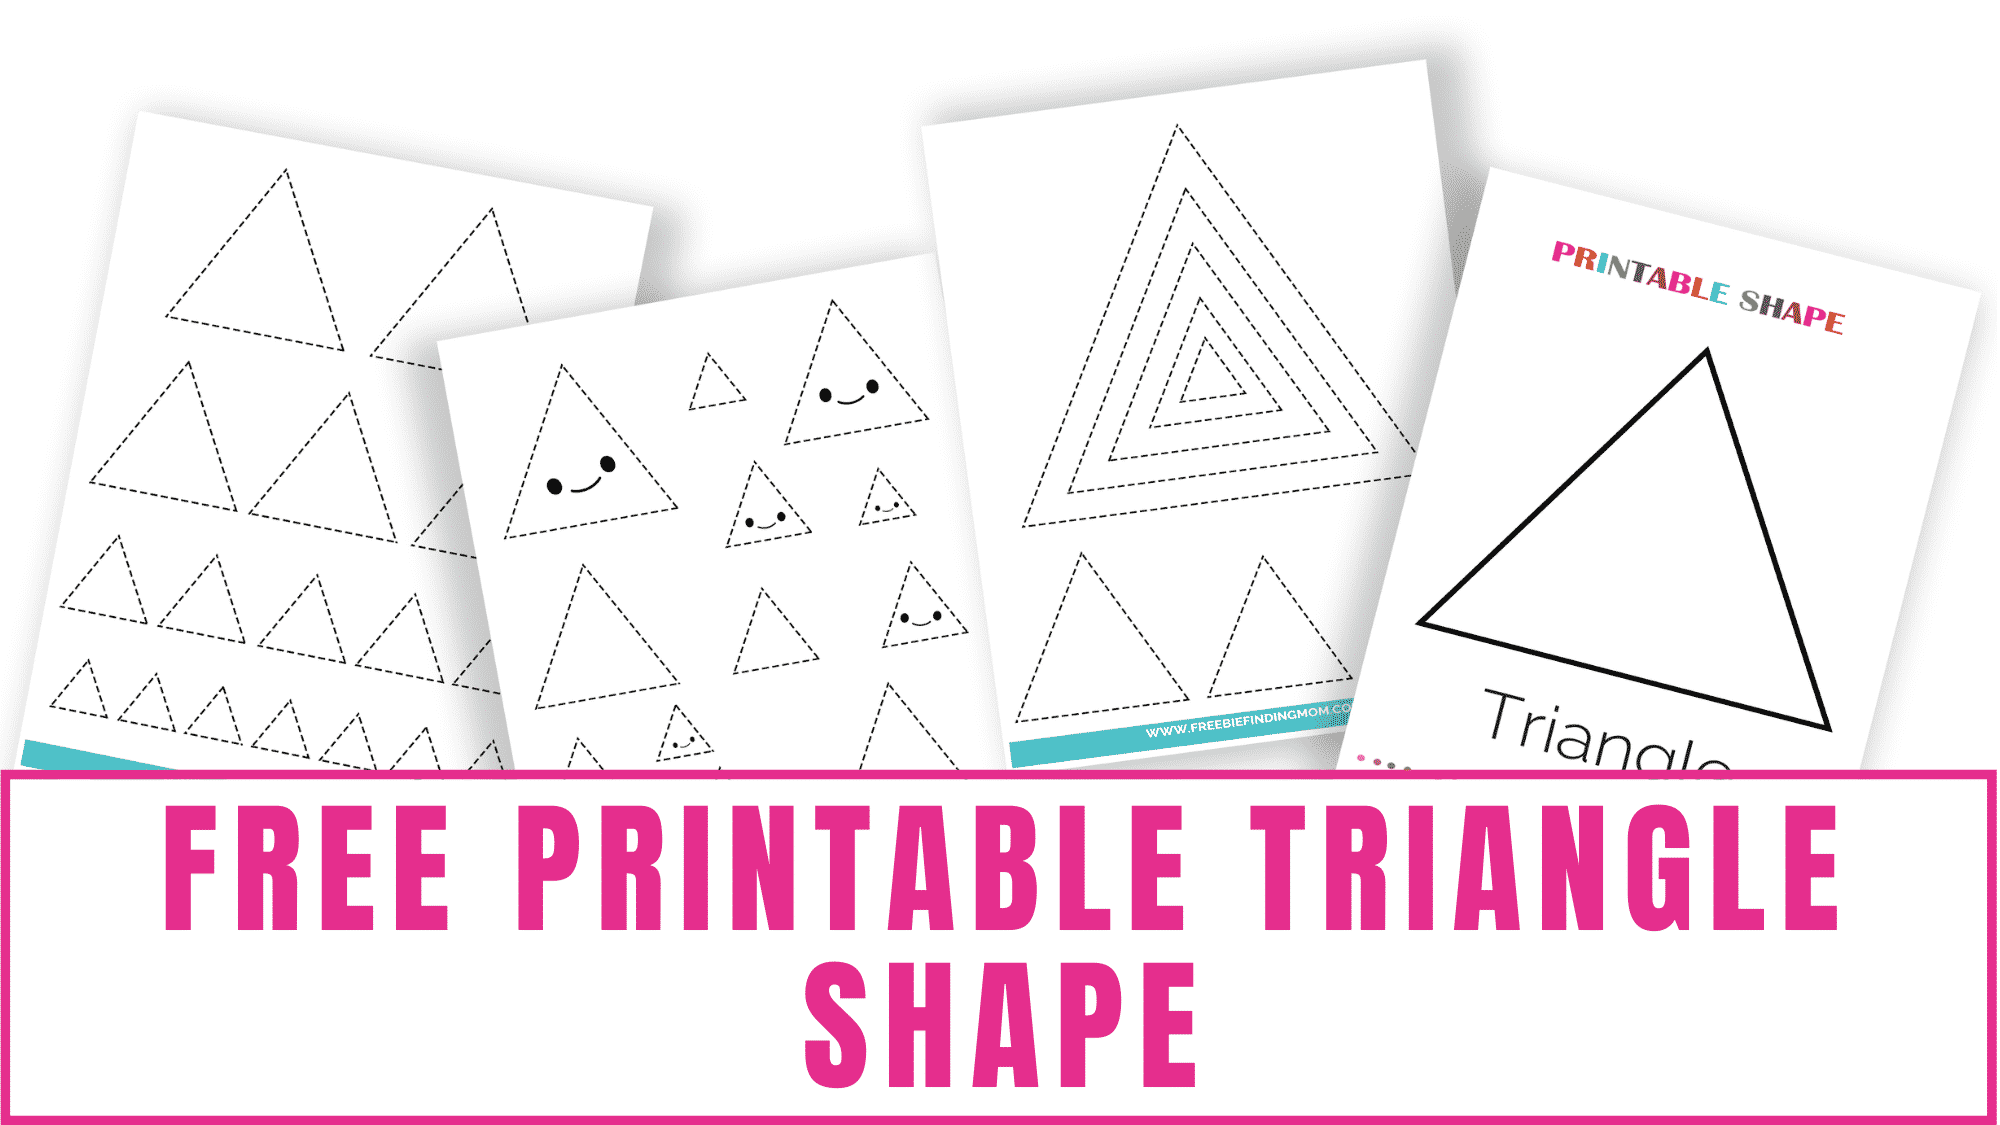 This free printable triangle shape can easily become a triangle tracing worksheet for kids, a triangle shape coloring page for preschoolers, and more.